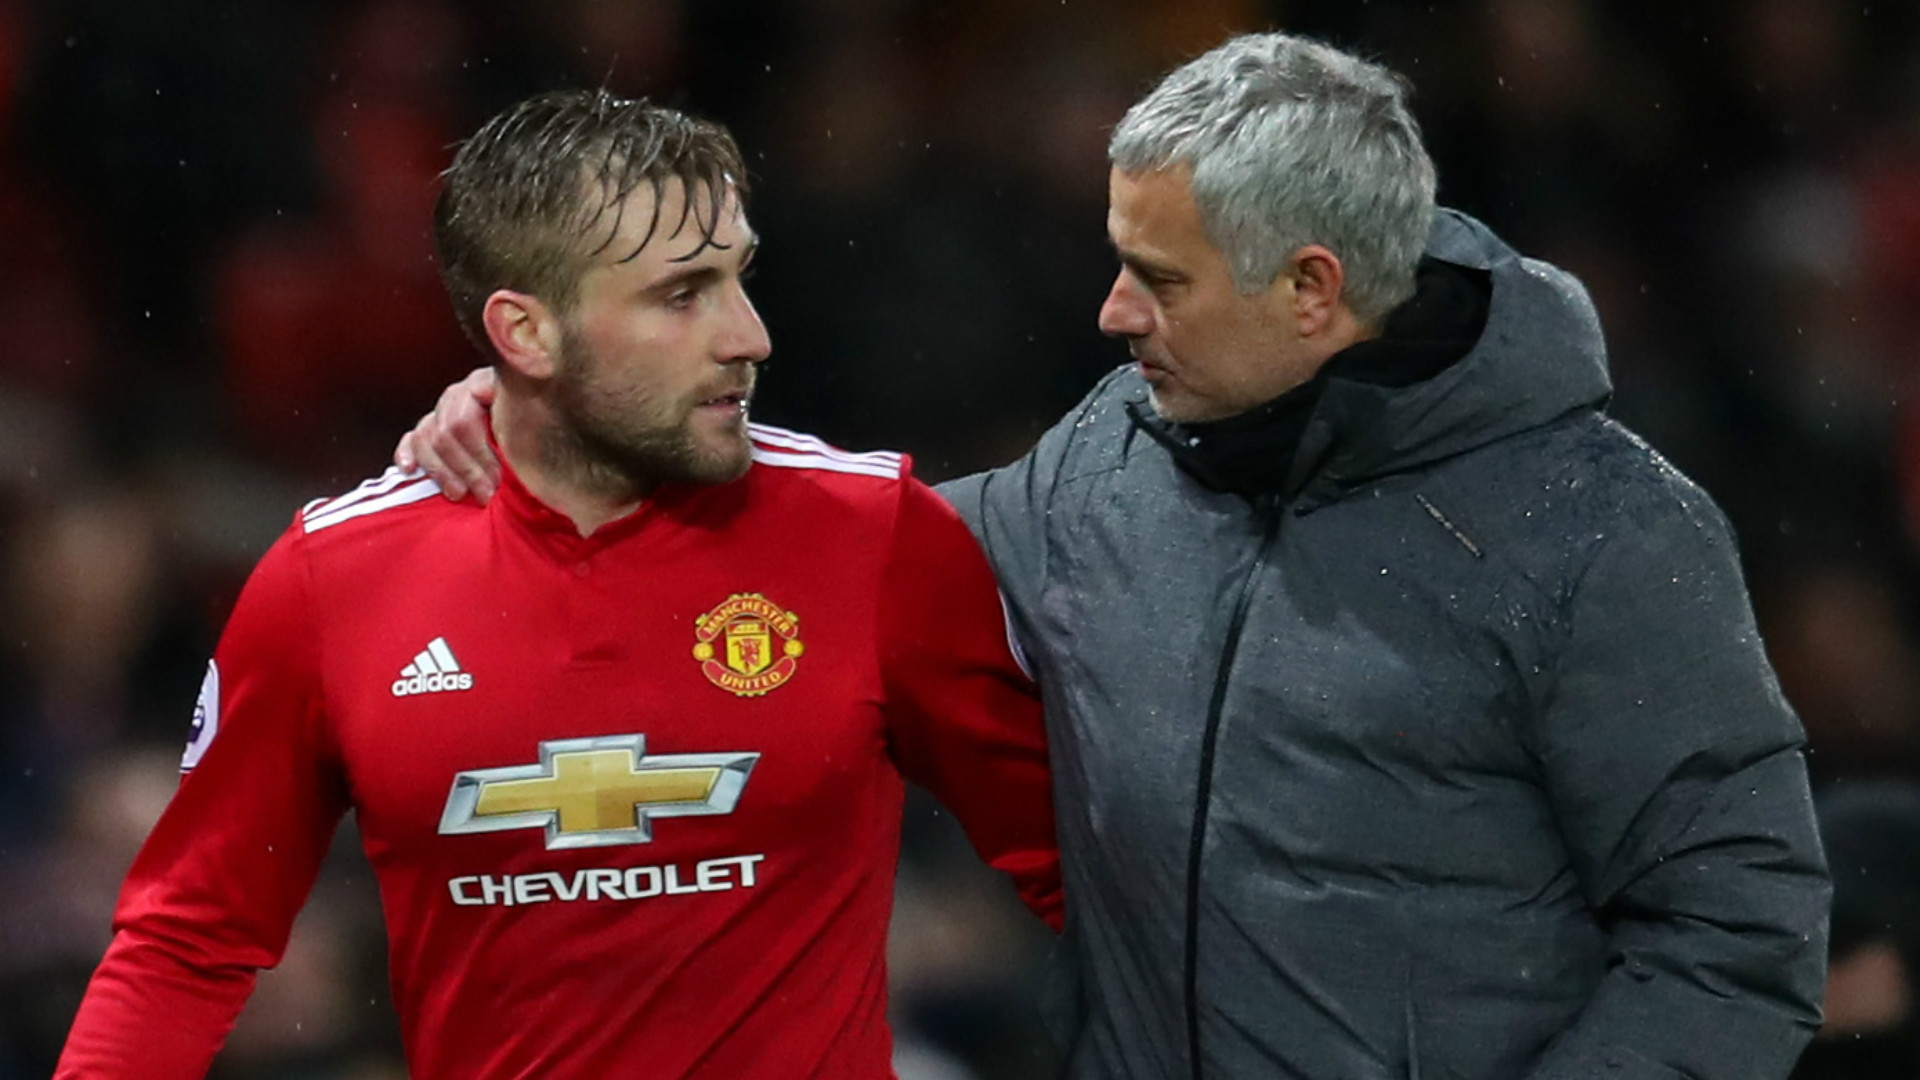 Gary Neville: 'Luke Shaw situation a distraction for Manchester United'